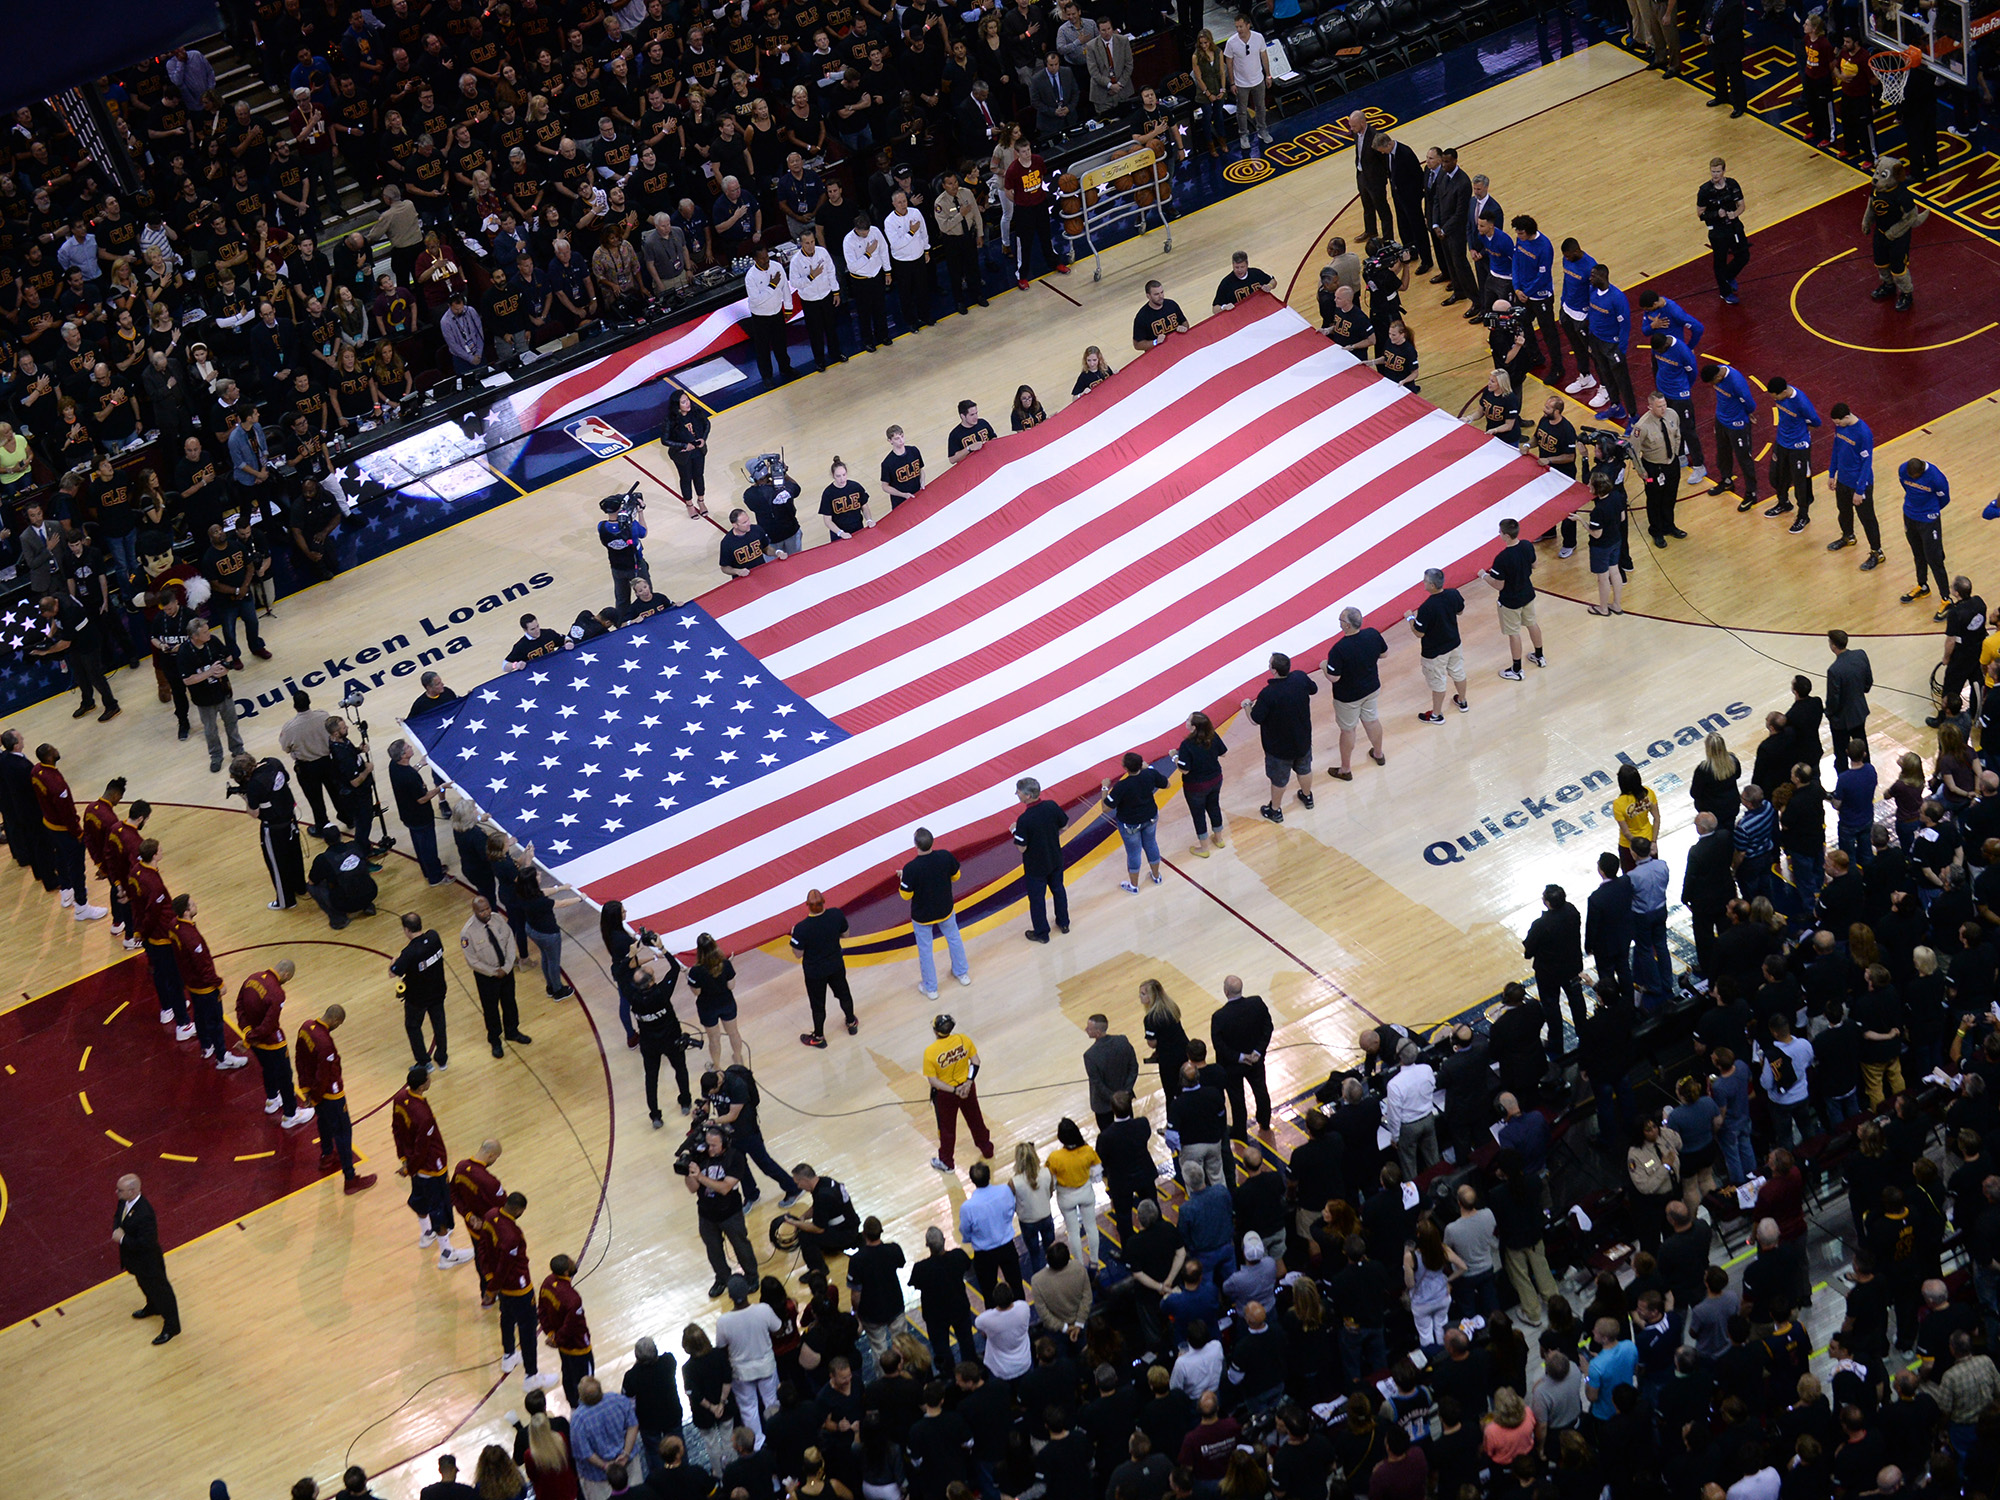 nba has chance to be proactive about national anthem protests com noah graham getty images